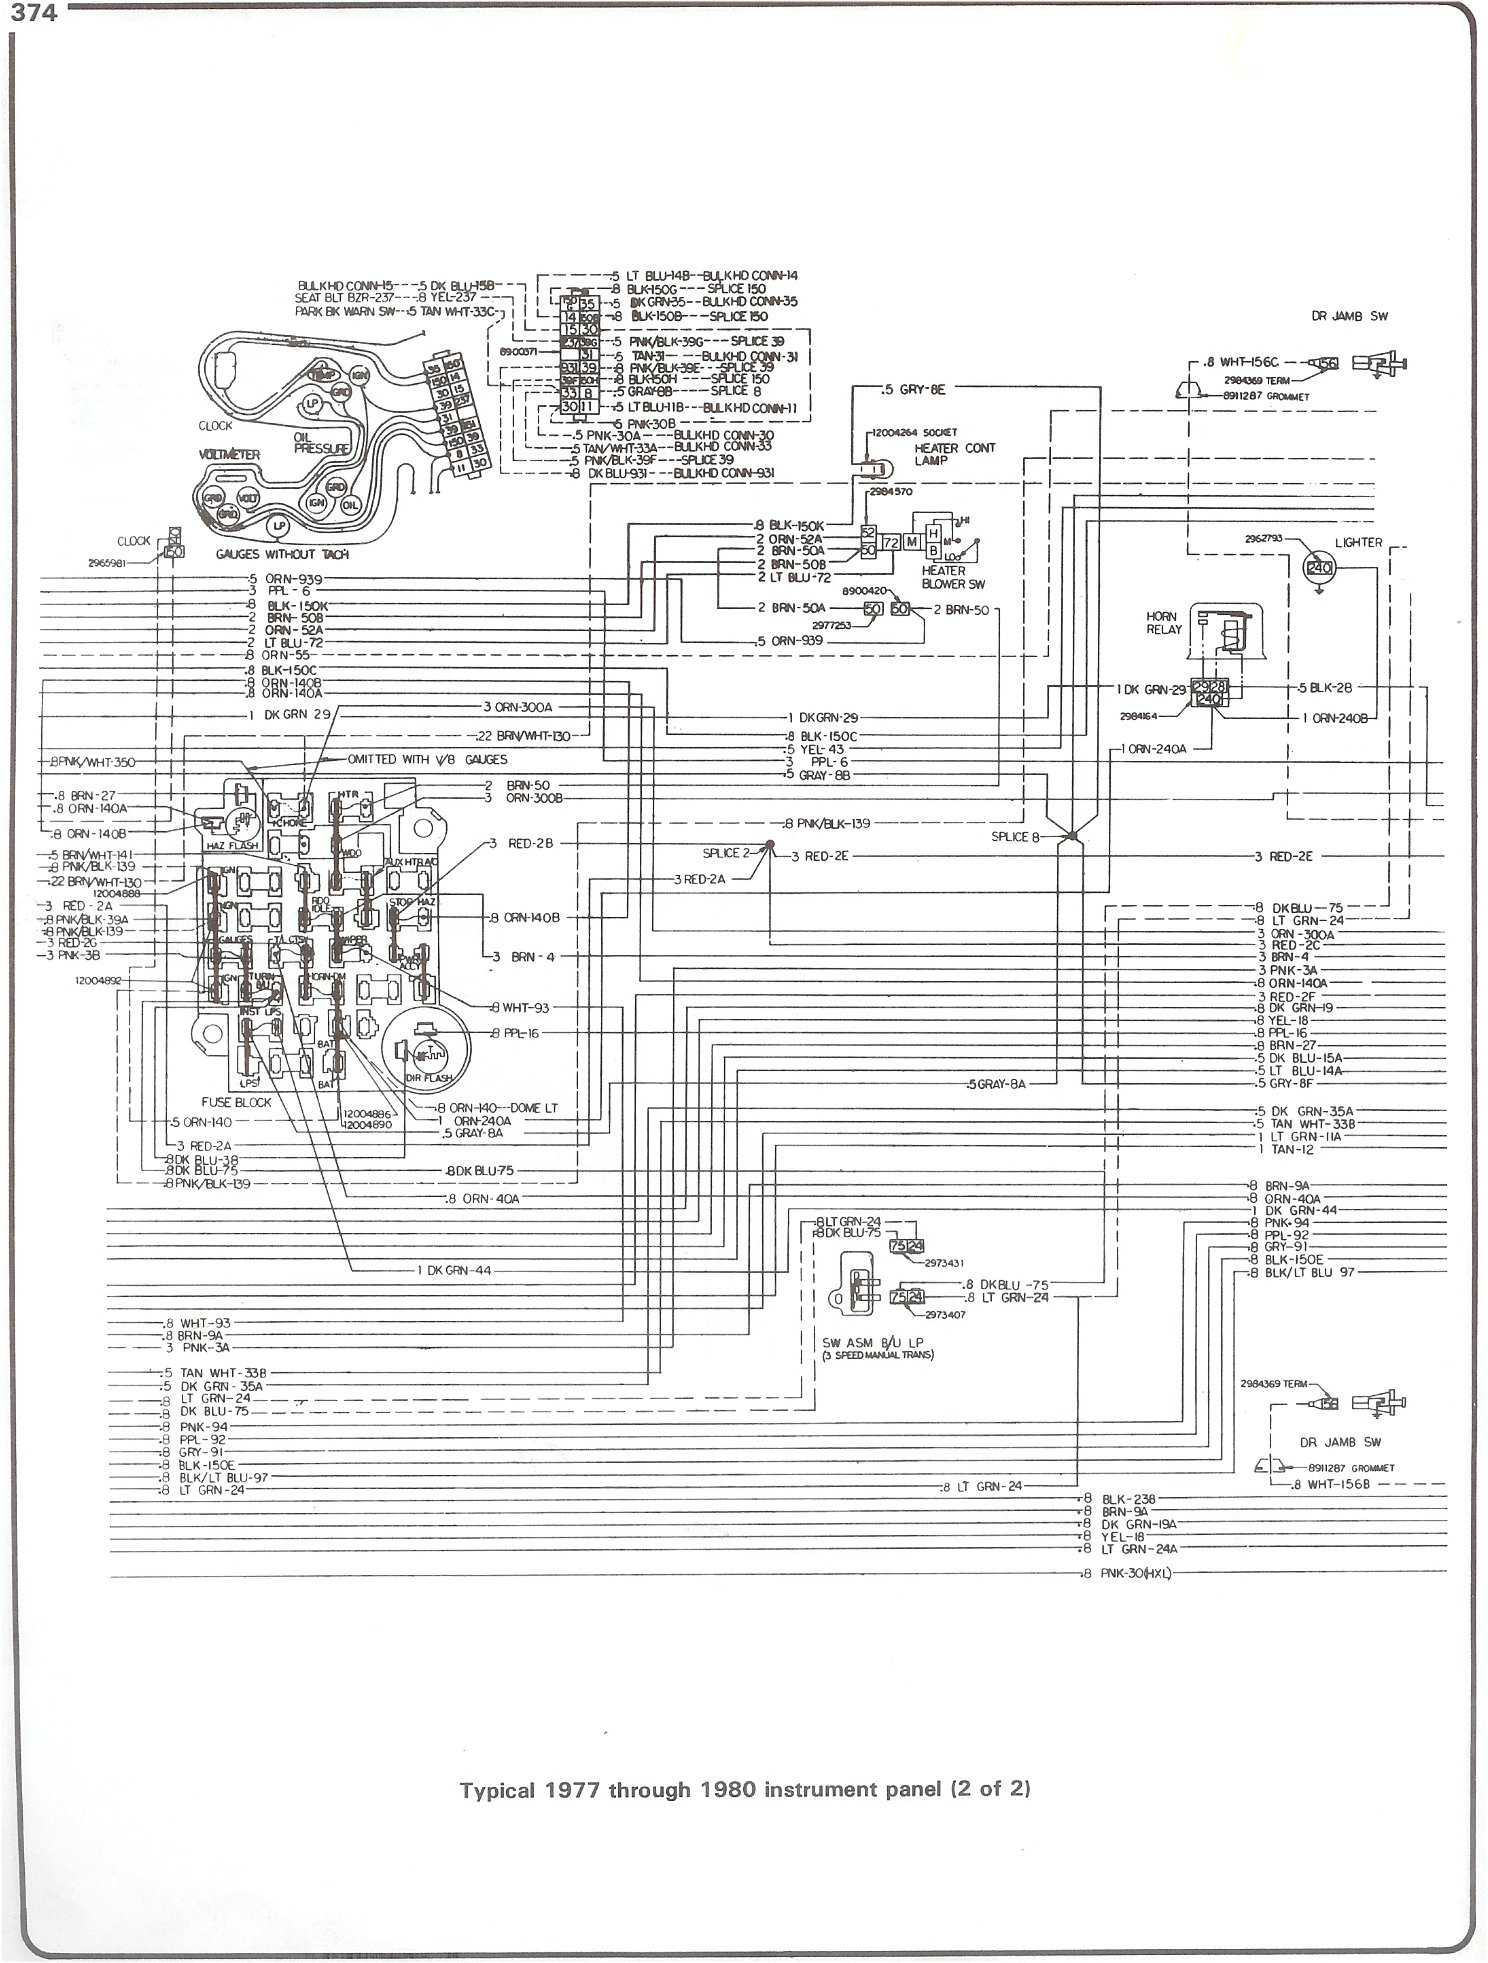 77 80_instrument_pg2 complete 73 87 wiring diagrams 73-87 Chevy Wiring Diagrams Site at panicattacktreatment.co